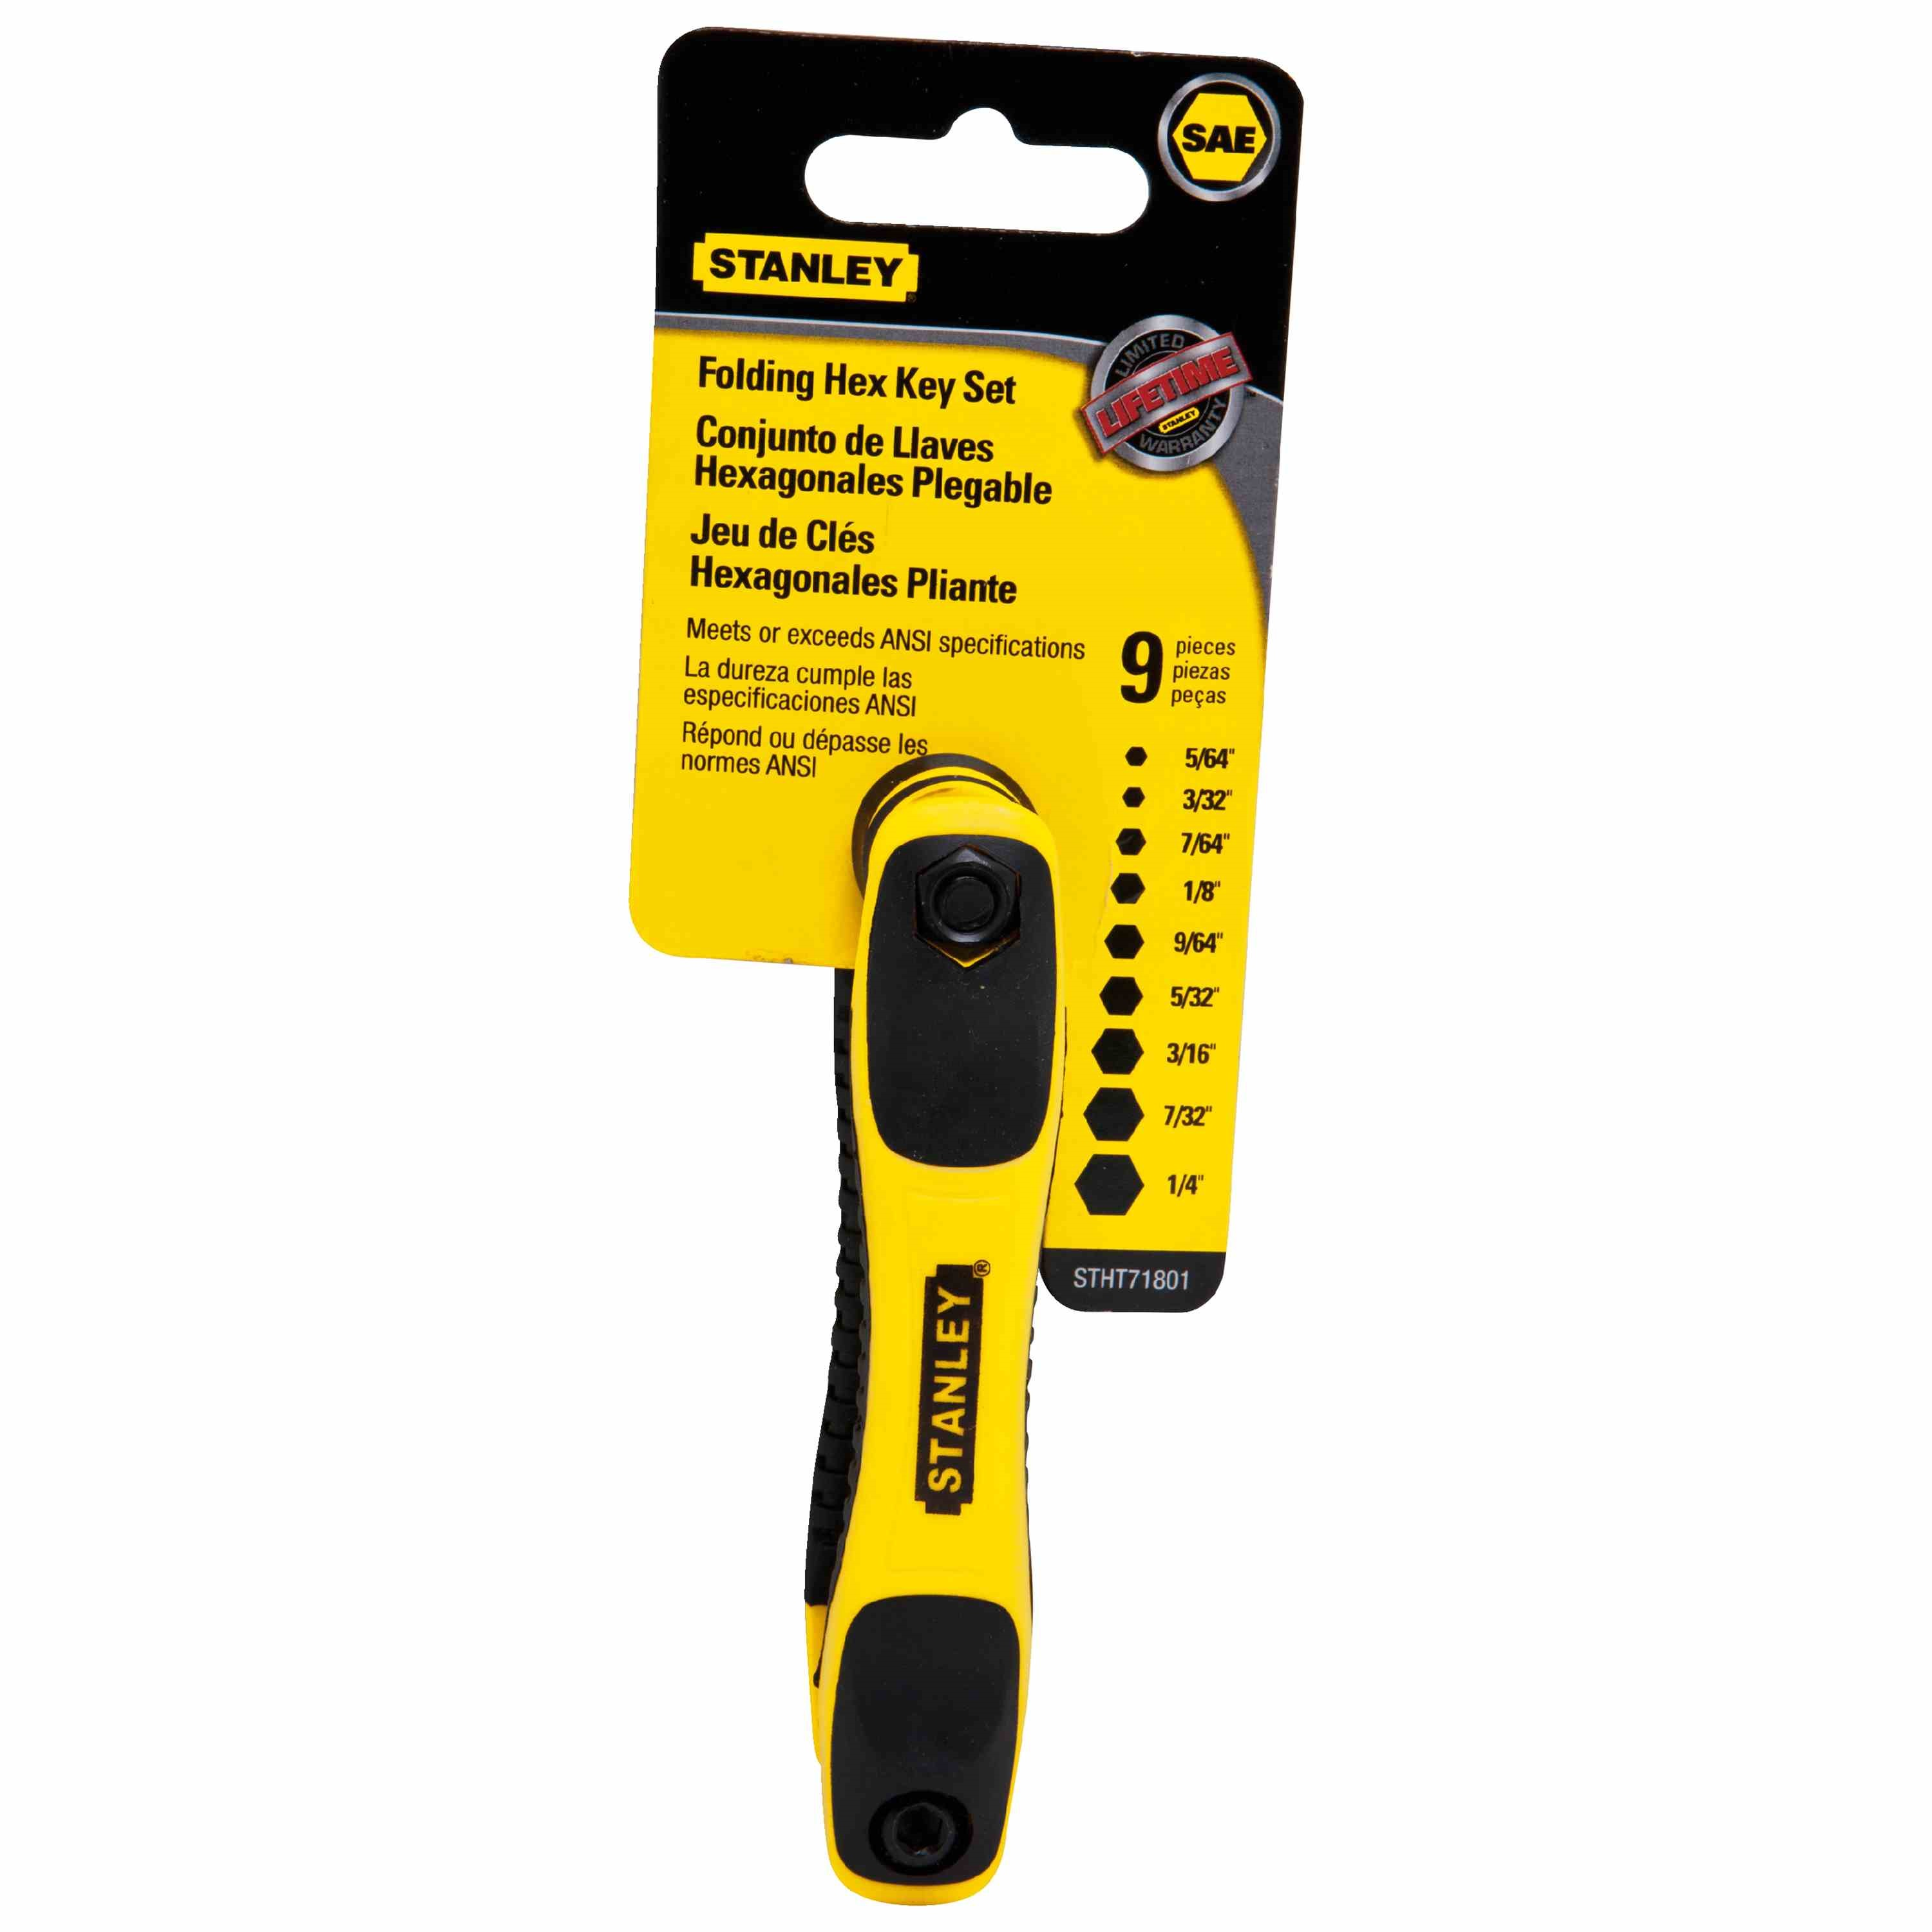 Stanley Tools - 9 pc Folding Hex Key Set - STHT71801